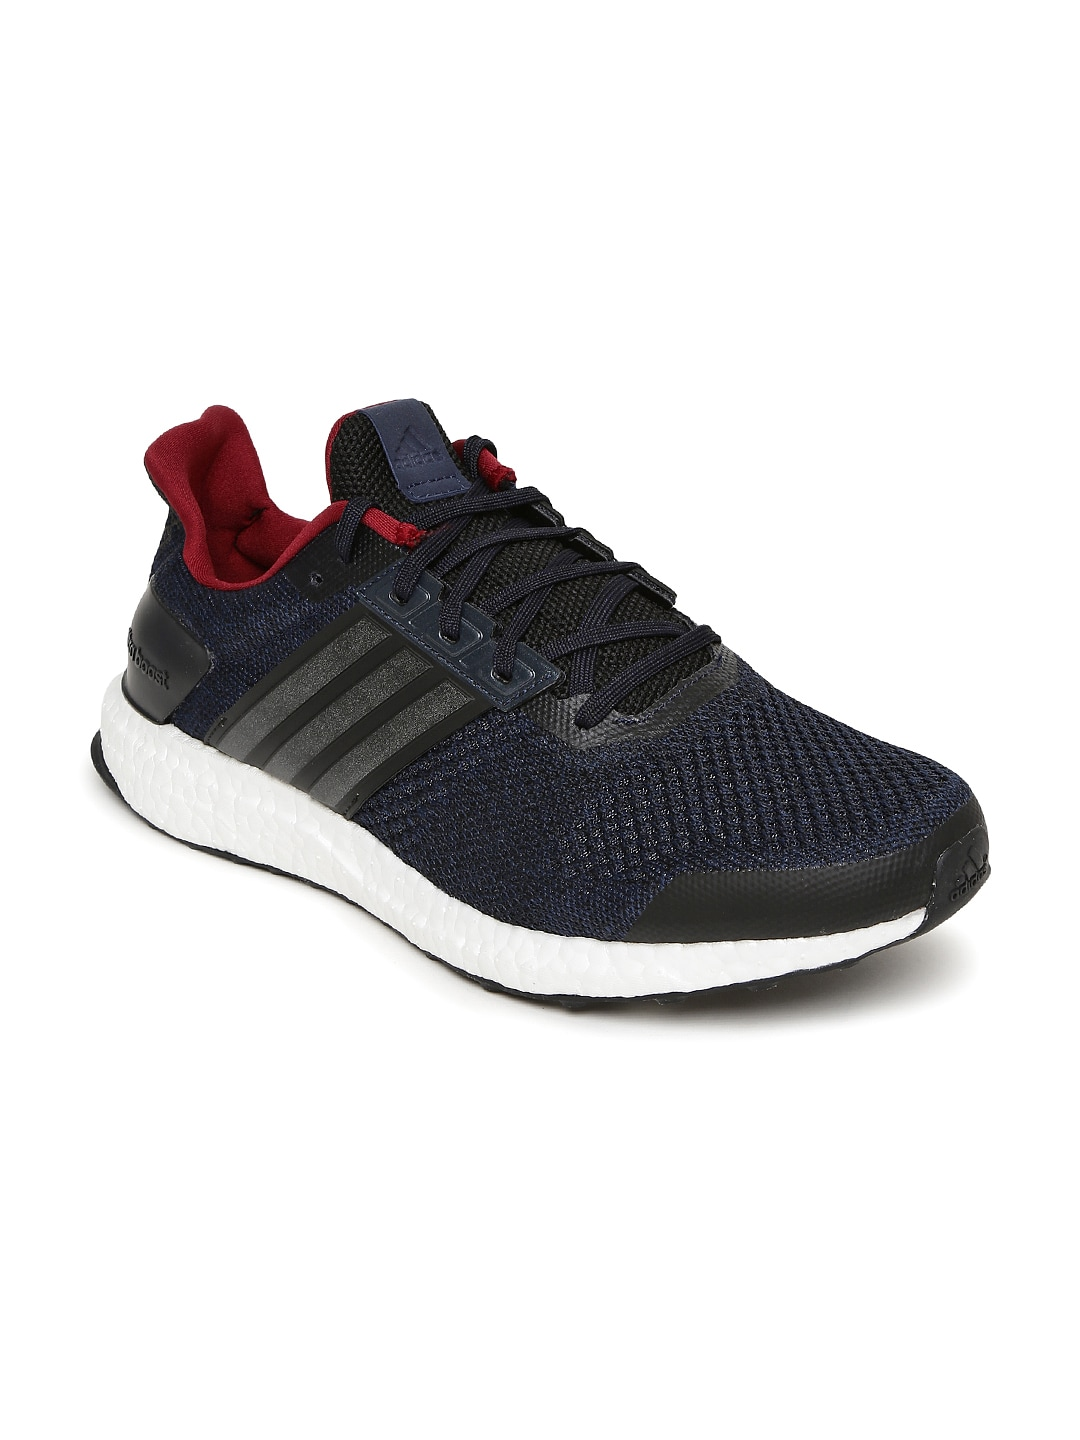 c4f61e1208cb1 Adidas bb3931 Men Navy Ultra Boost St Running Shoes - Best Price ...